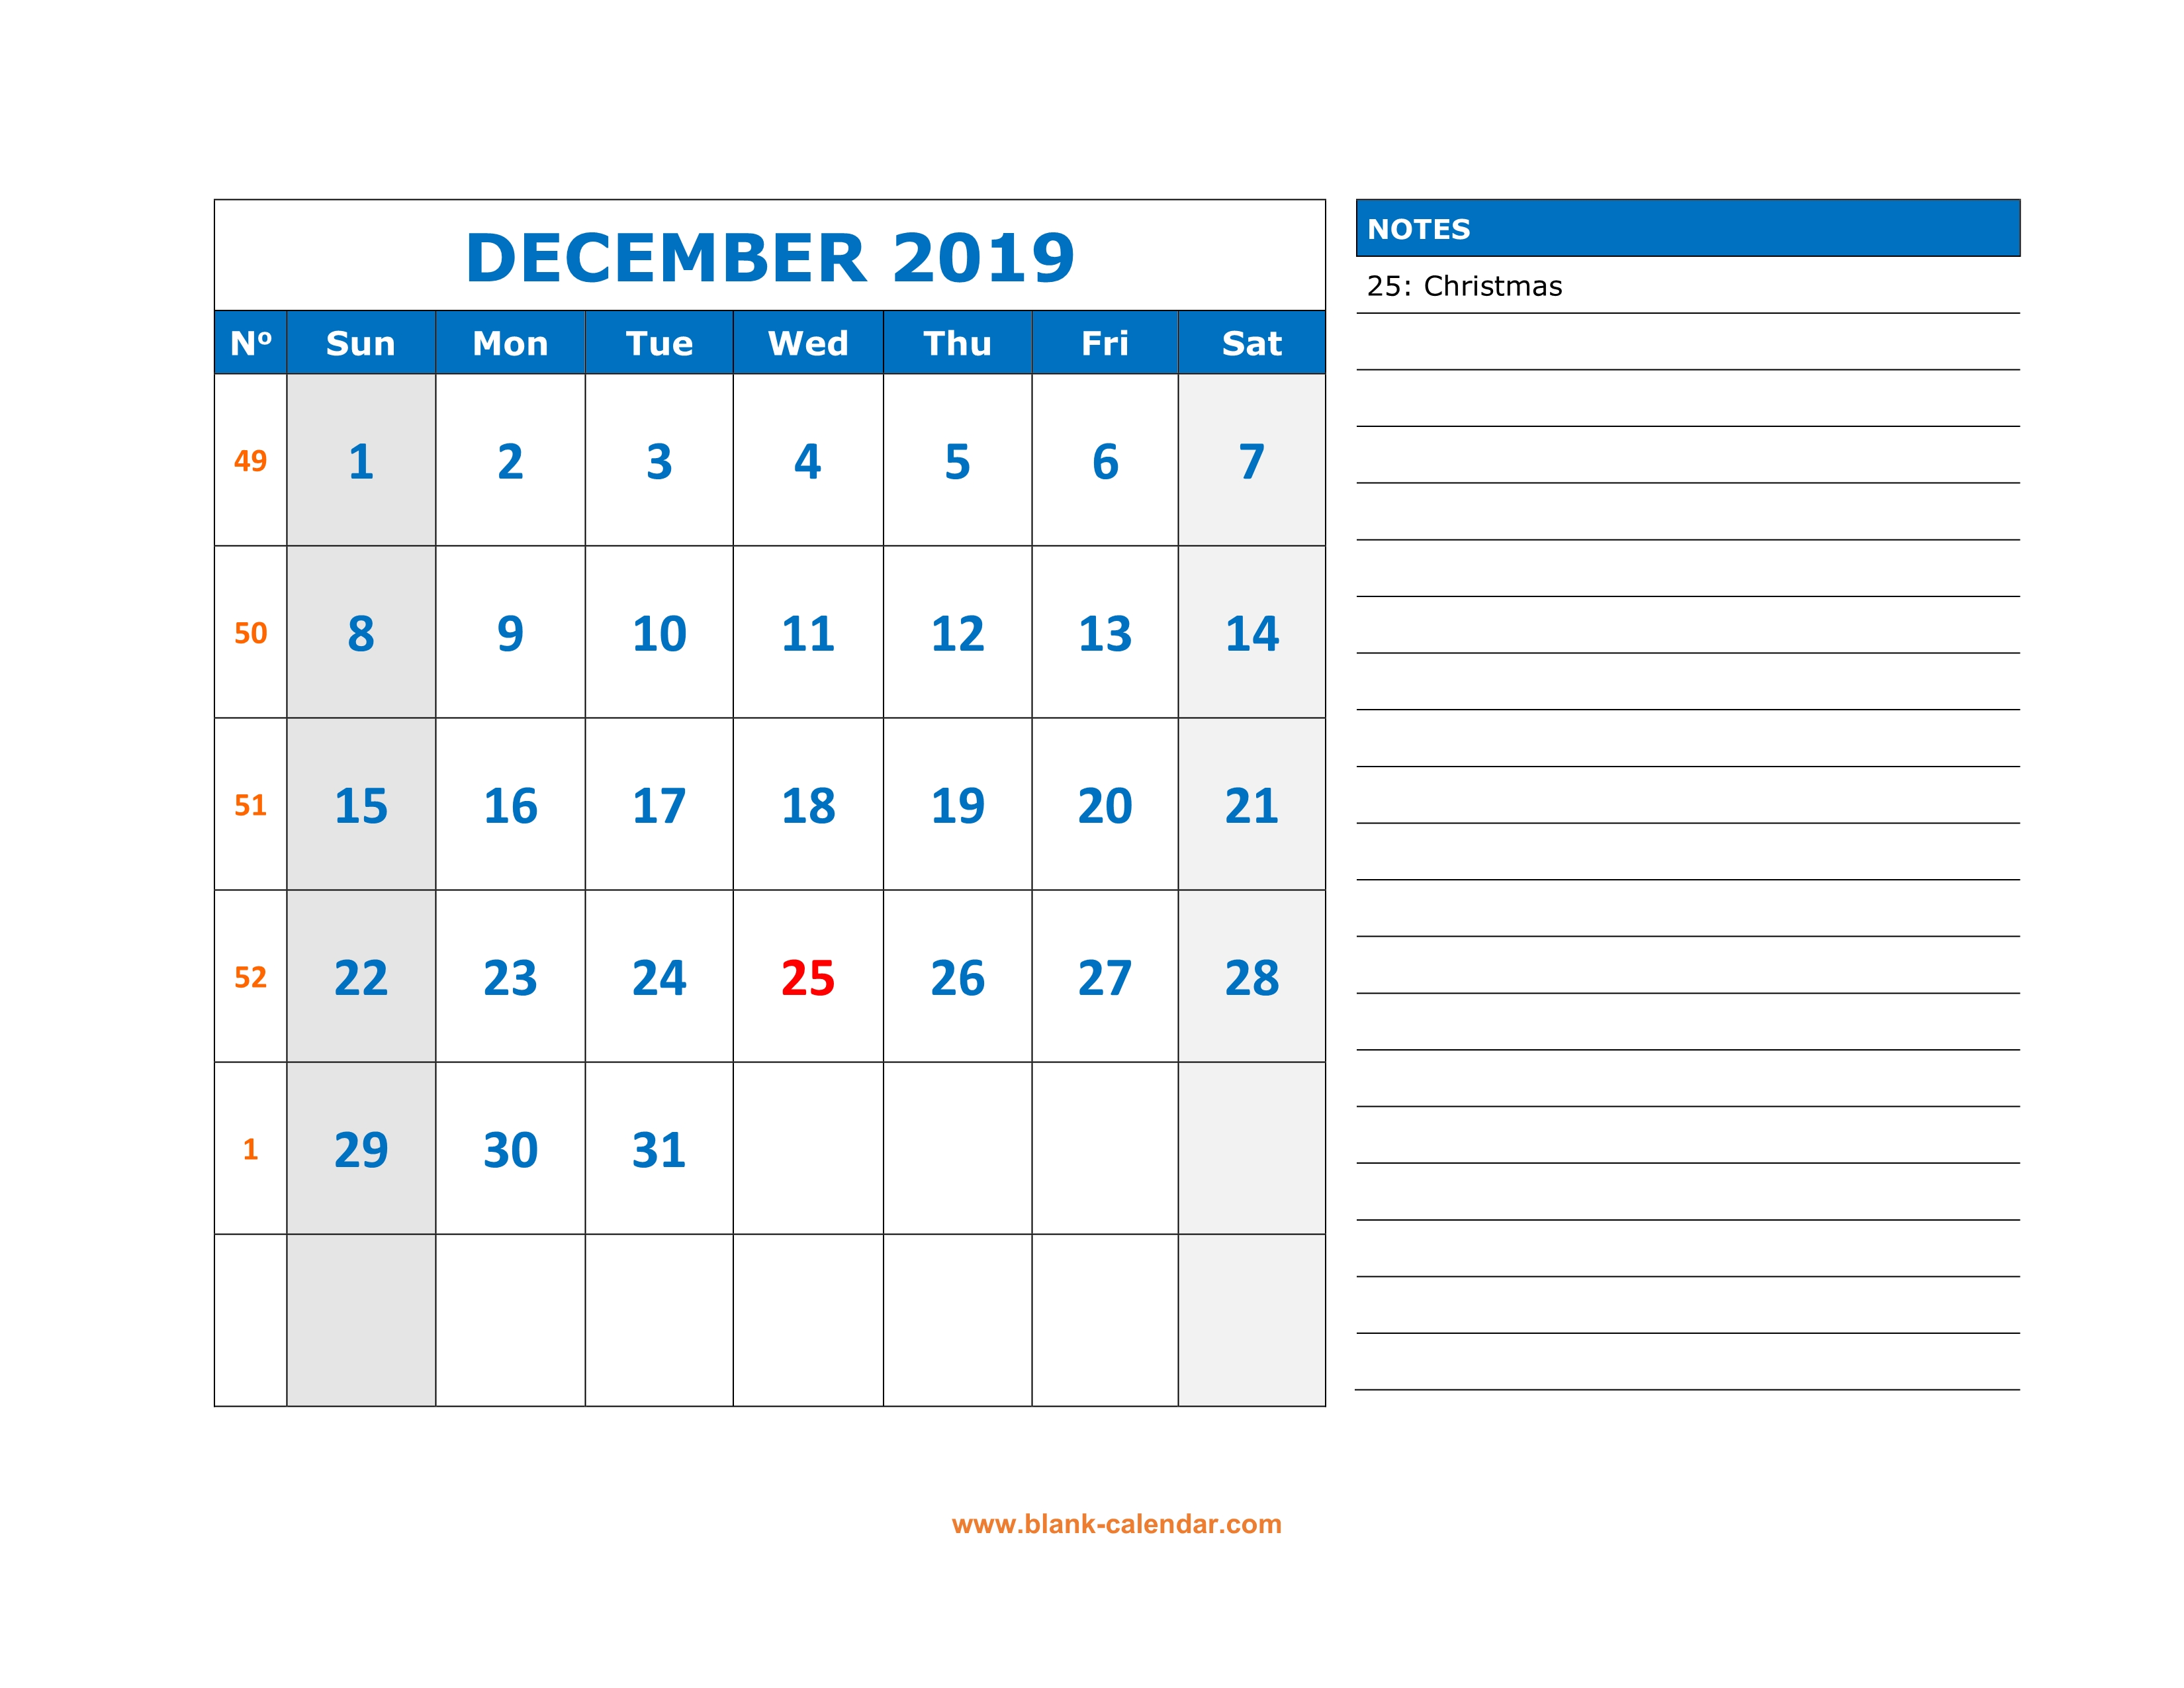 December 2019 Printable Calendar Space For Notes Included Free Download Printable December 2019 Calendar, large space for